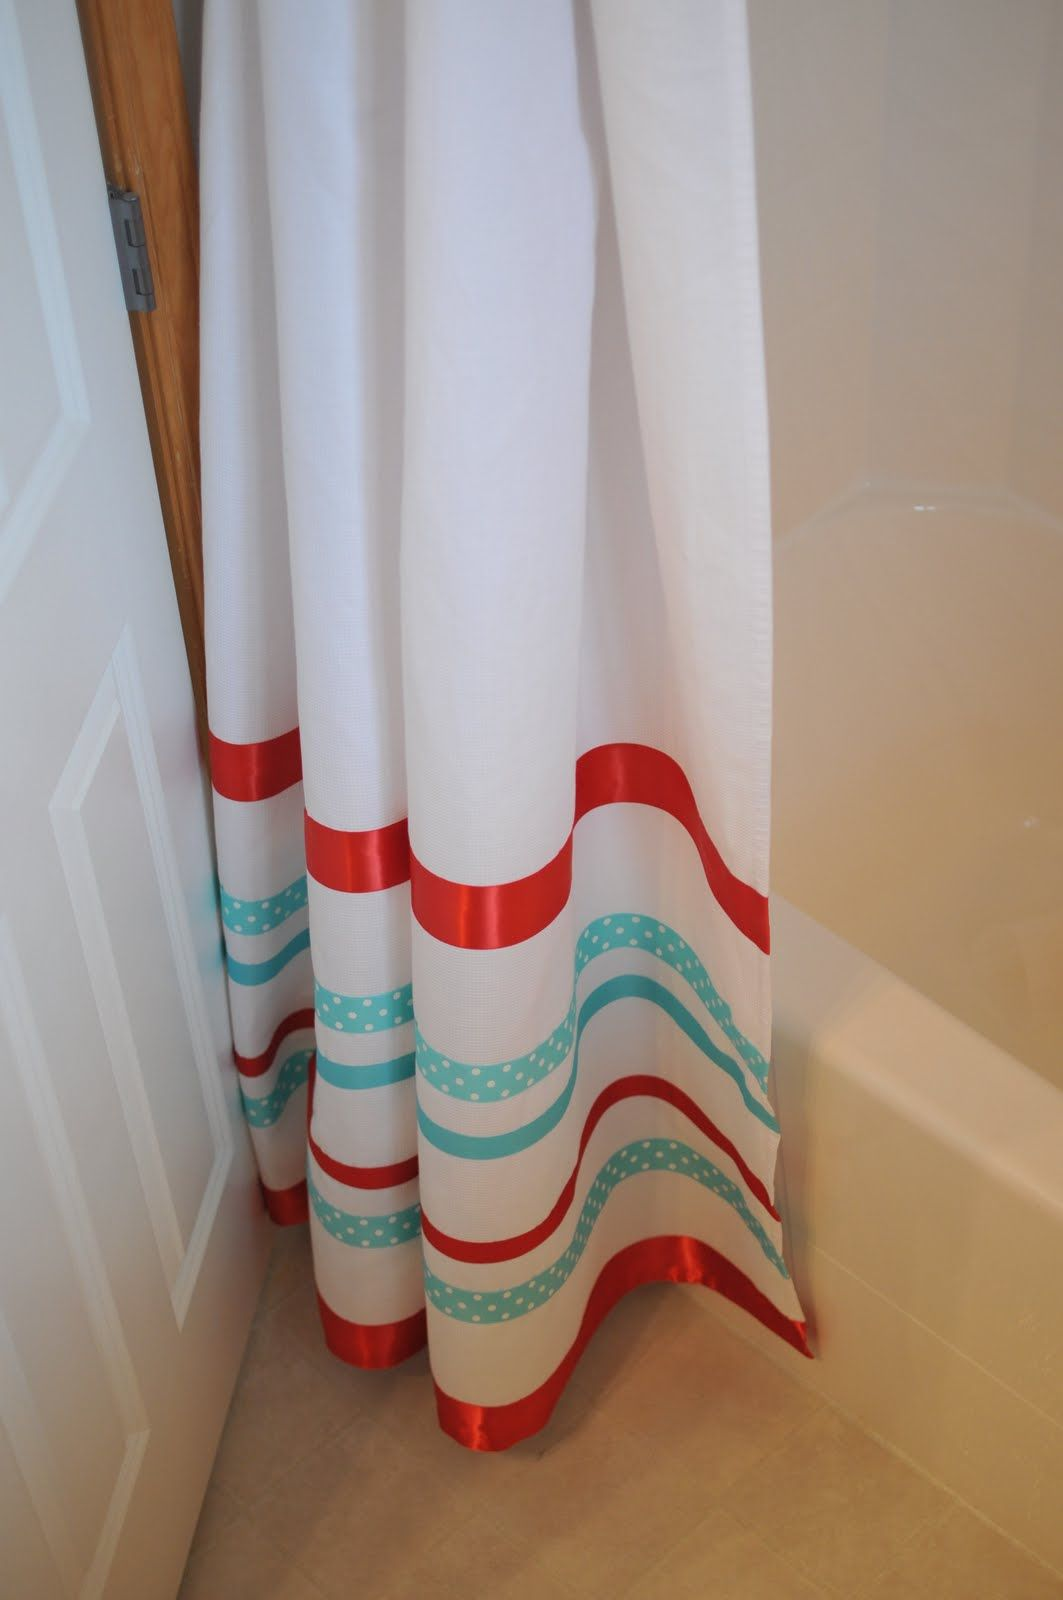 10 Ways To Spice Up Your Shower Curtain